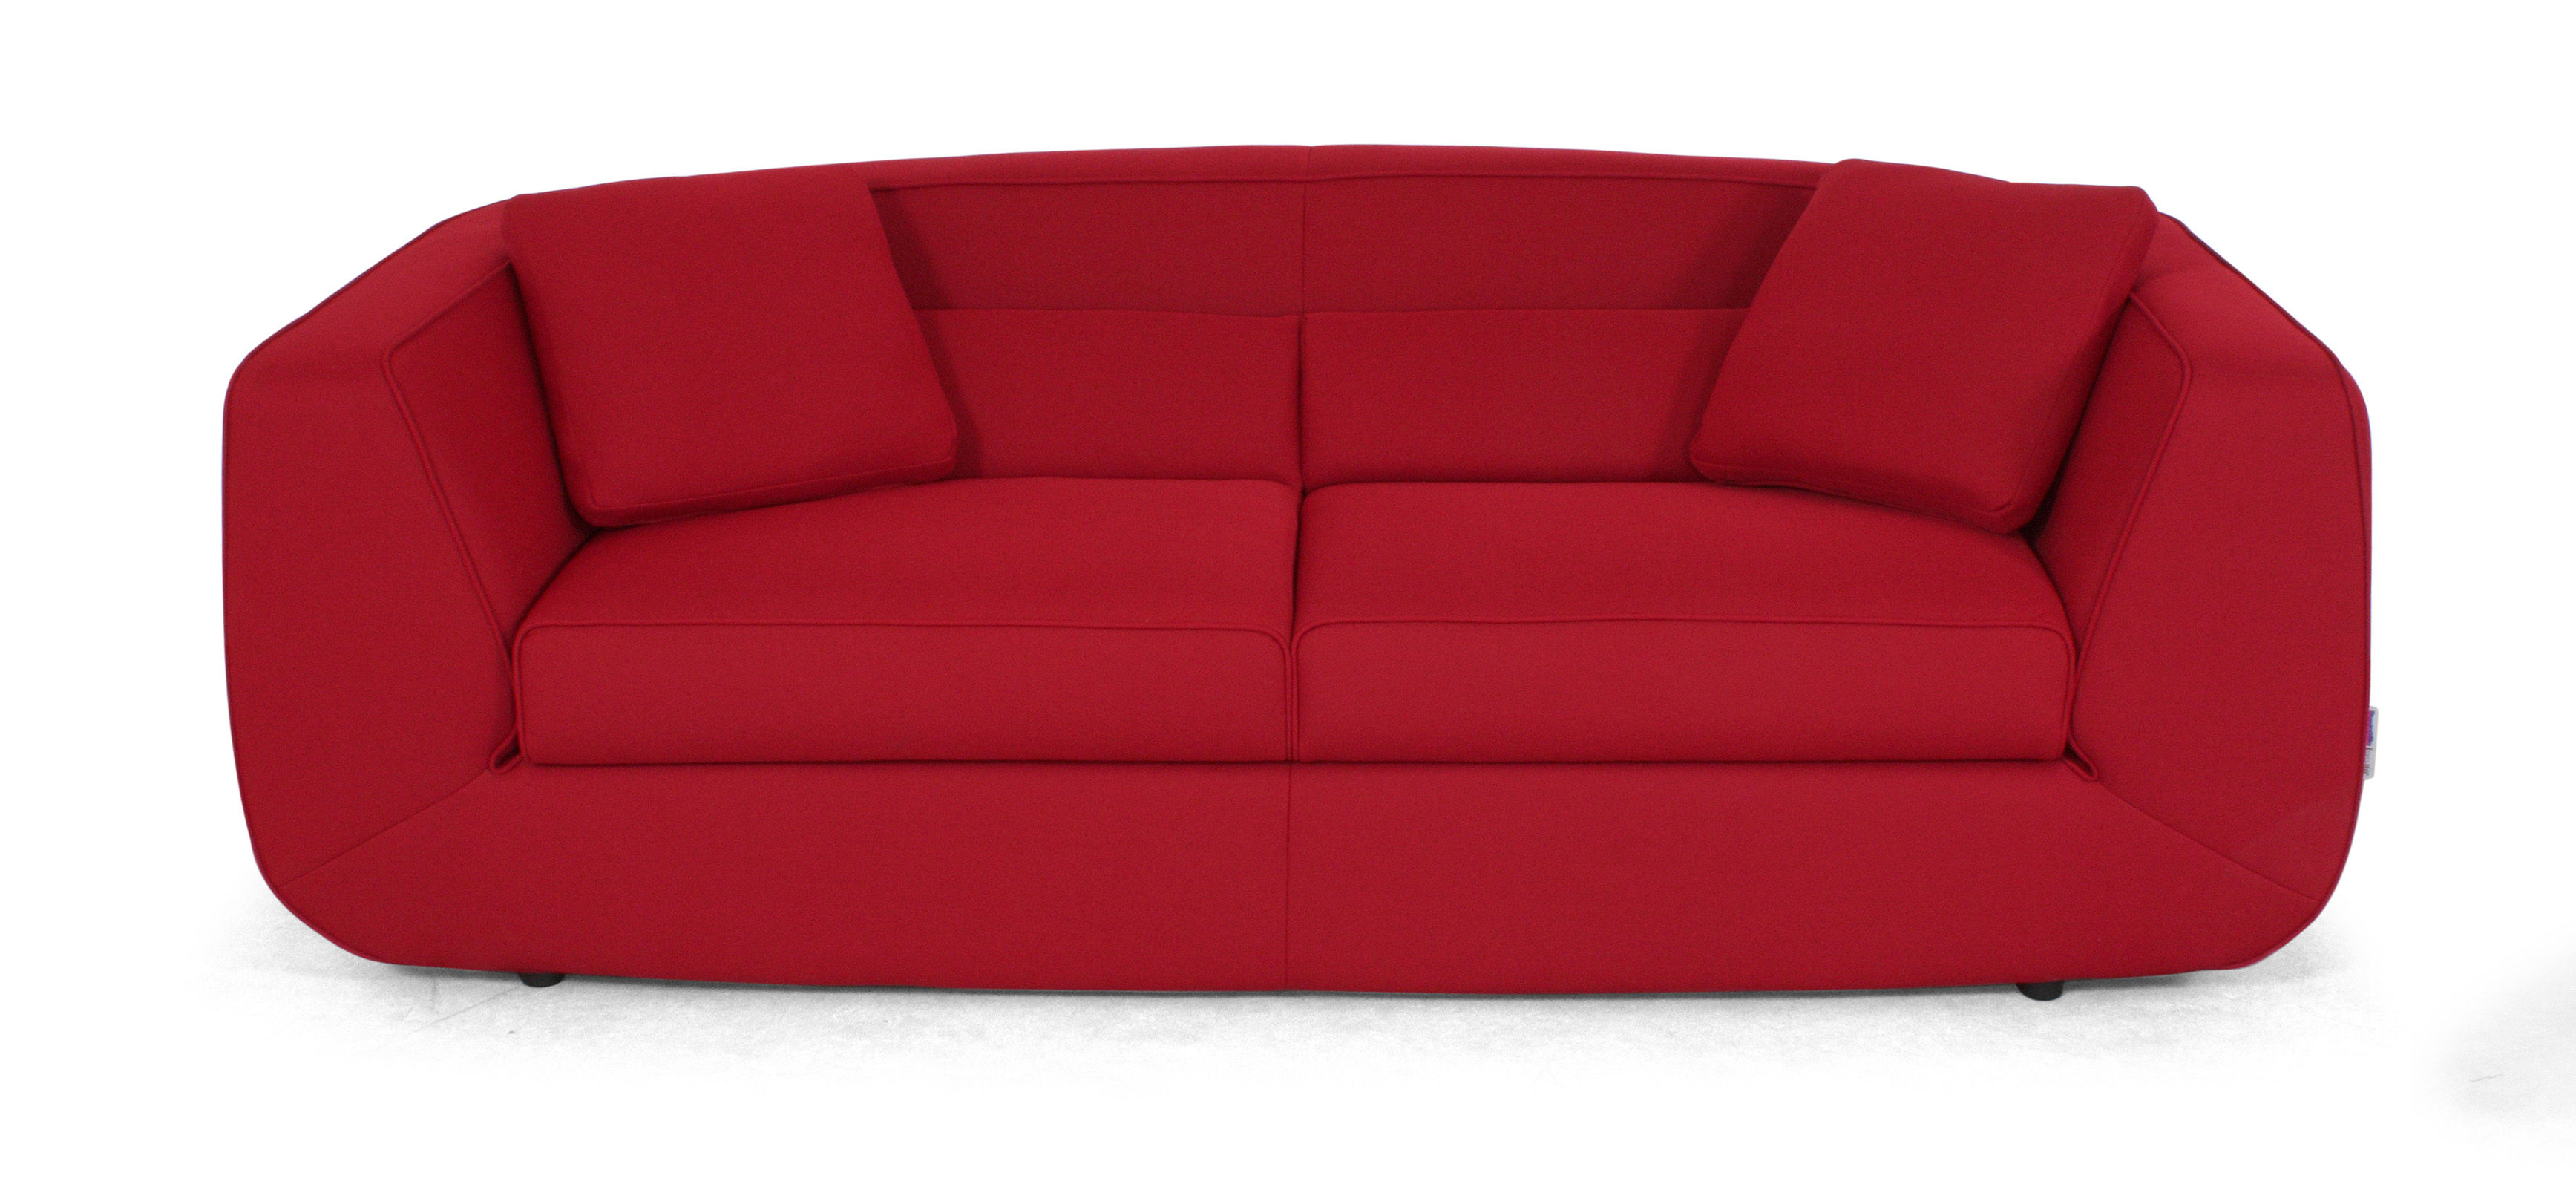 Canap convertible bump xl by ora ito 3 places l 238 cm rouge rouge d - Canape dunlopillo convertible ...